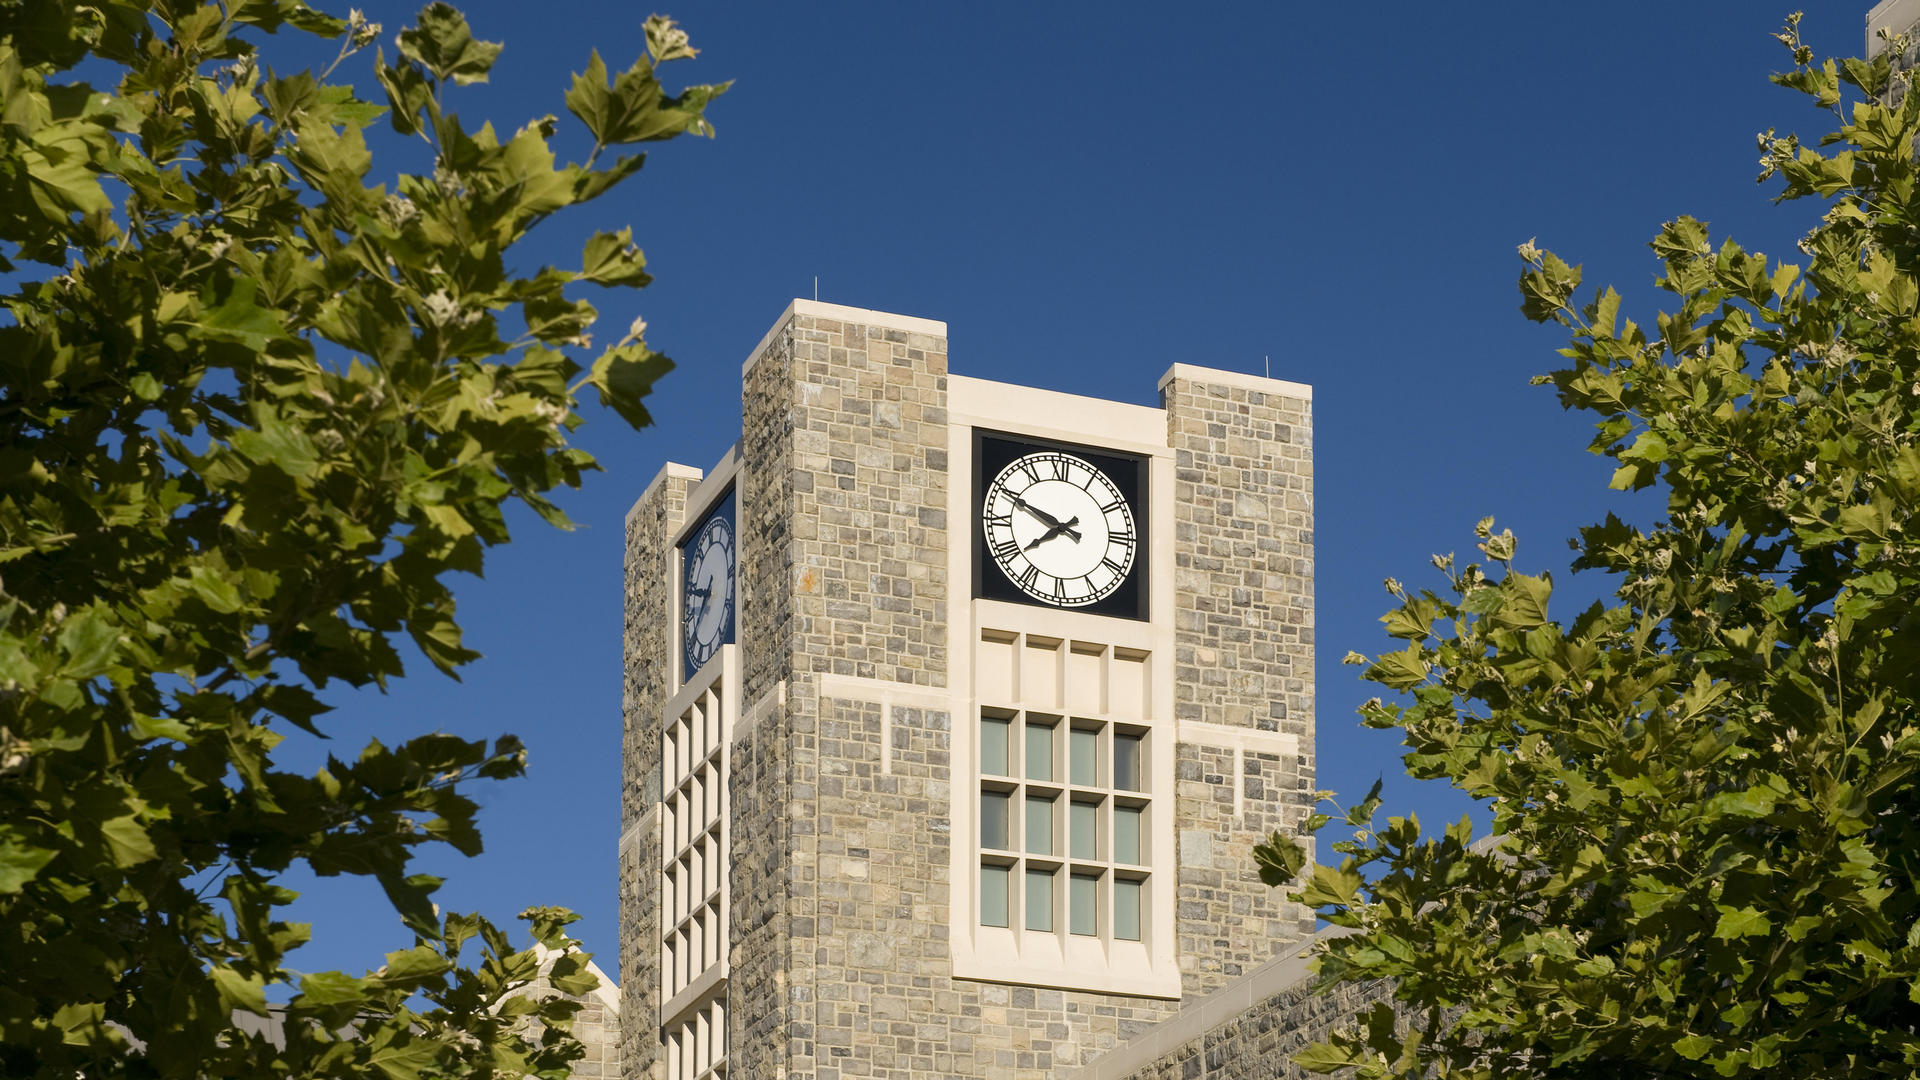 Clock tower at The Inn at Virginia Tech and Skelton Conference Center